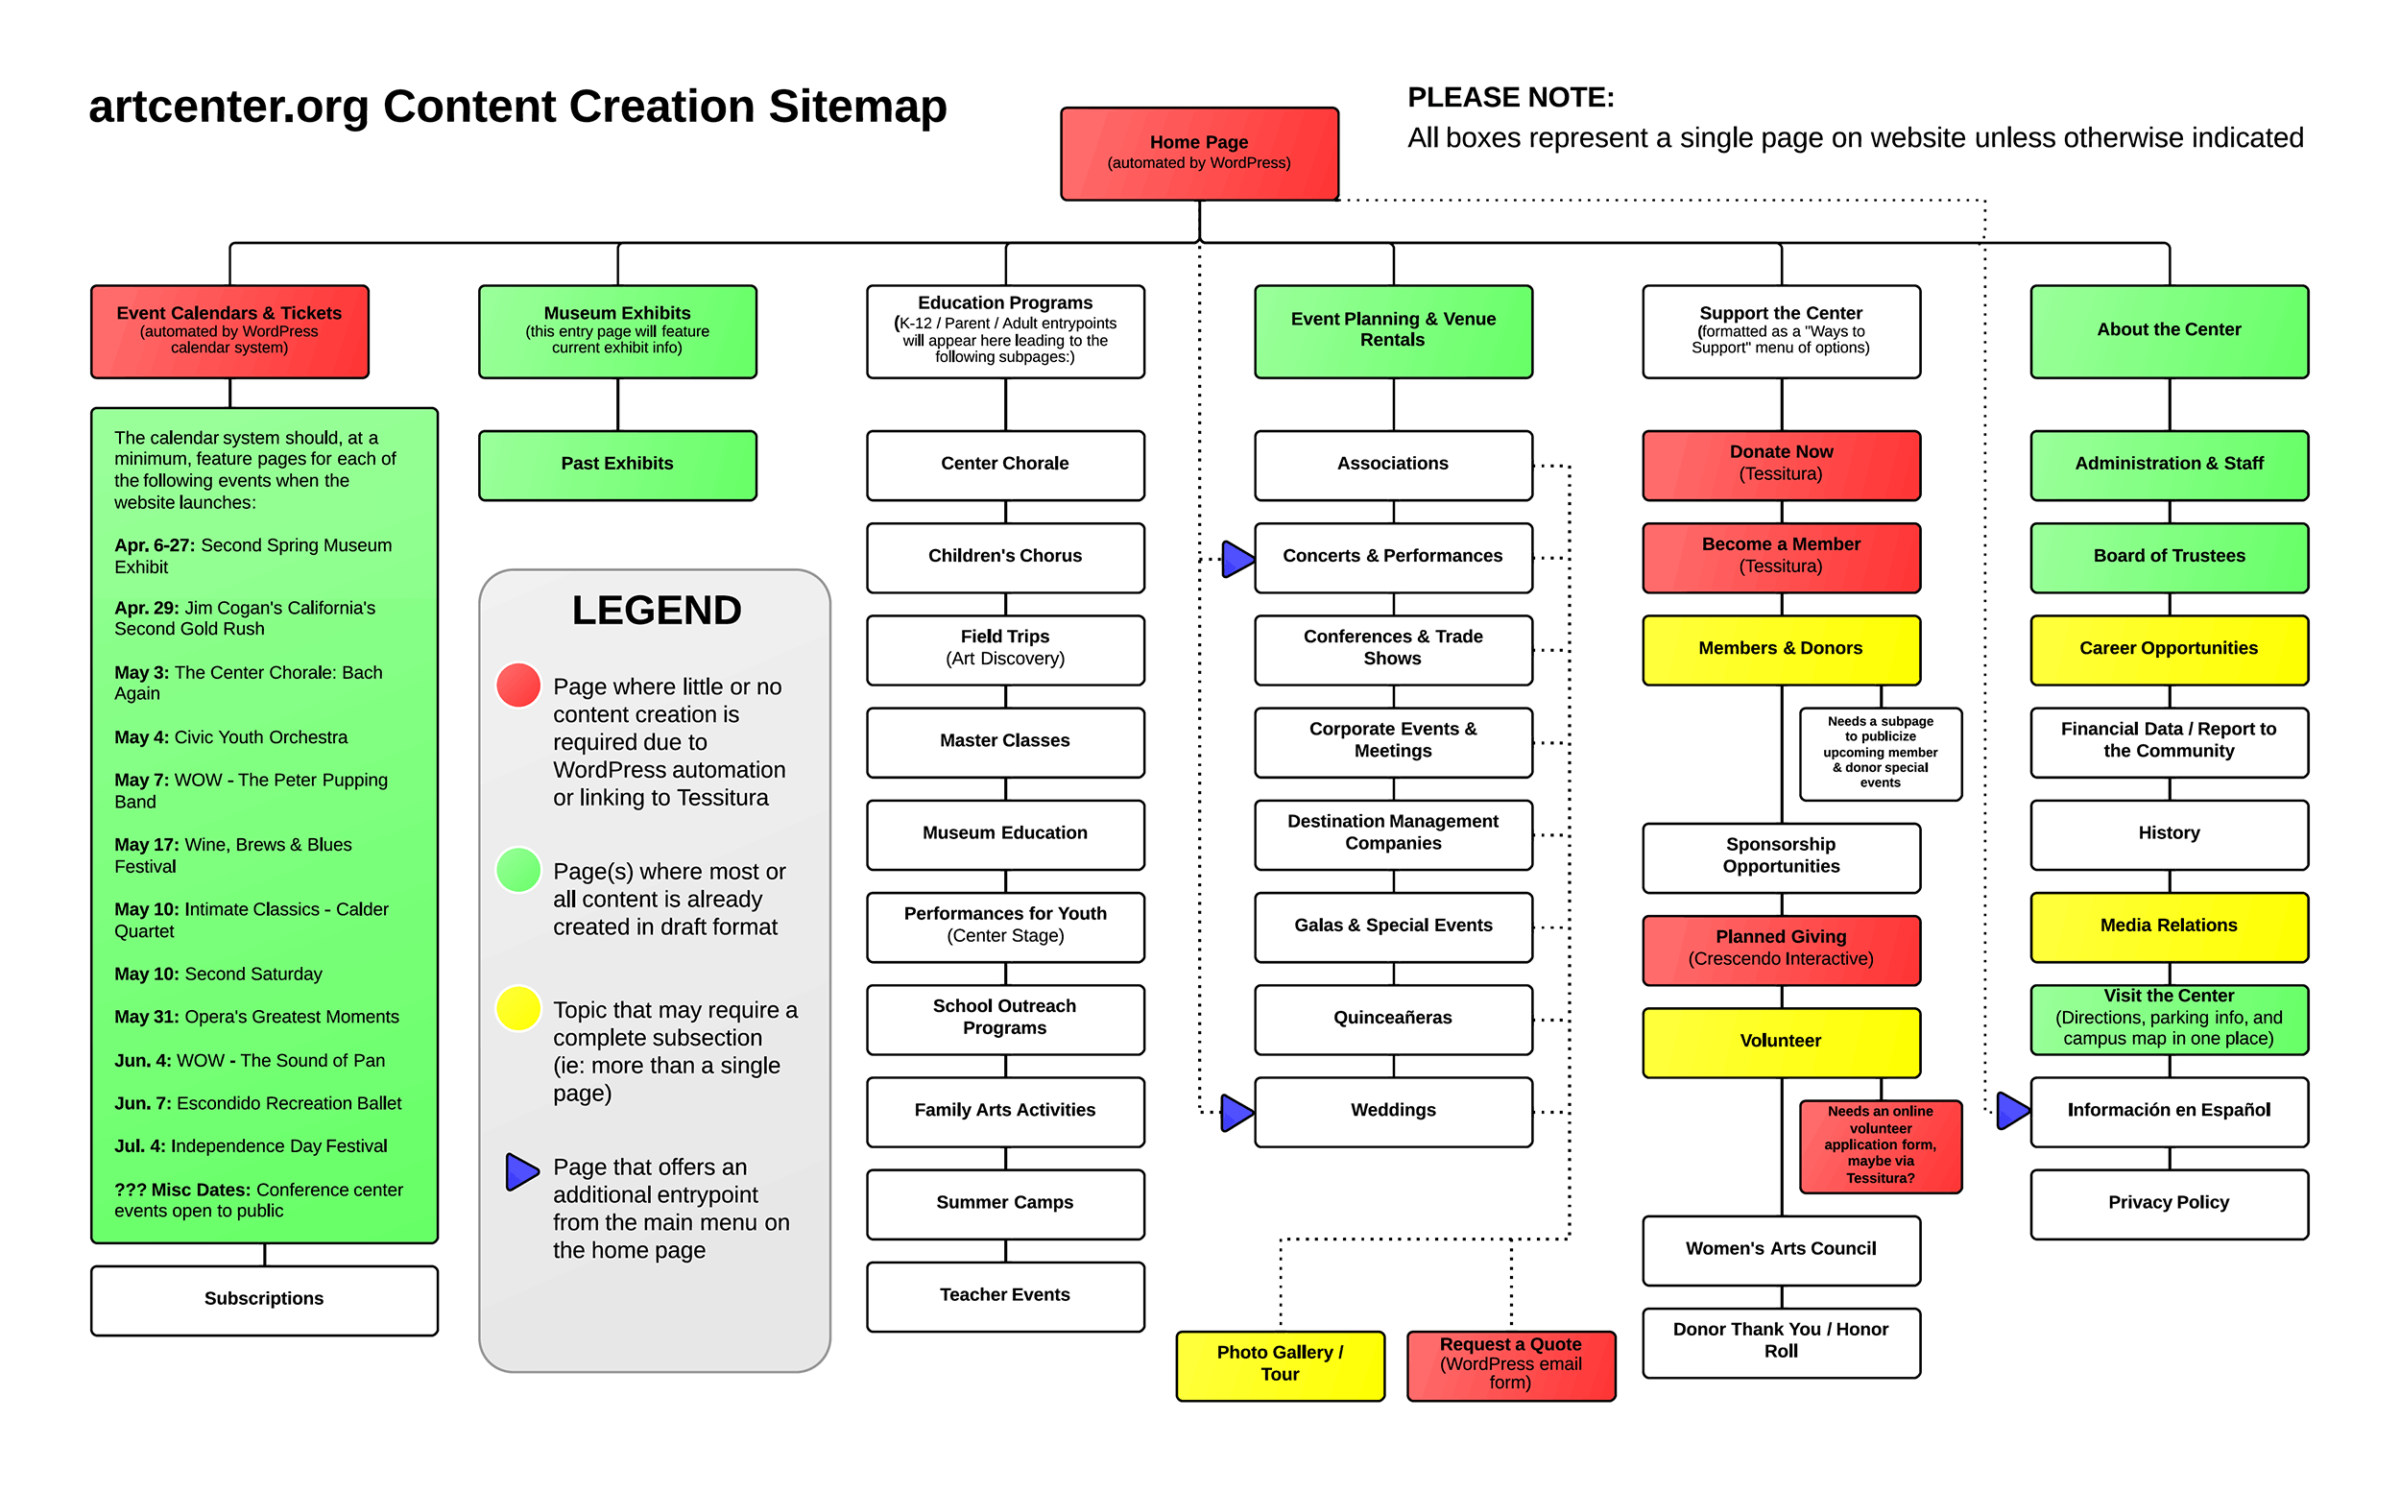 The sitemap shows numerous boxes, each representing a page in the website. Described in detail in the next paragraph.